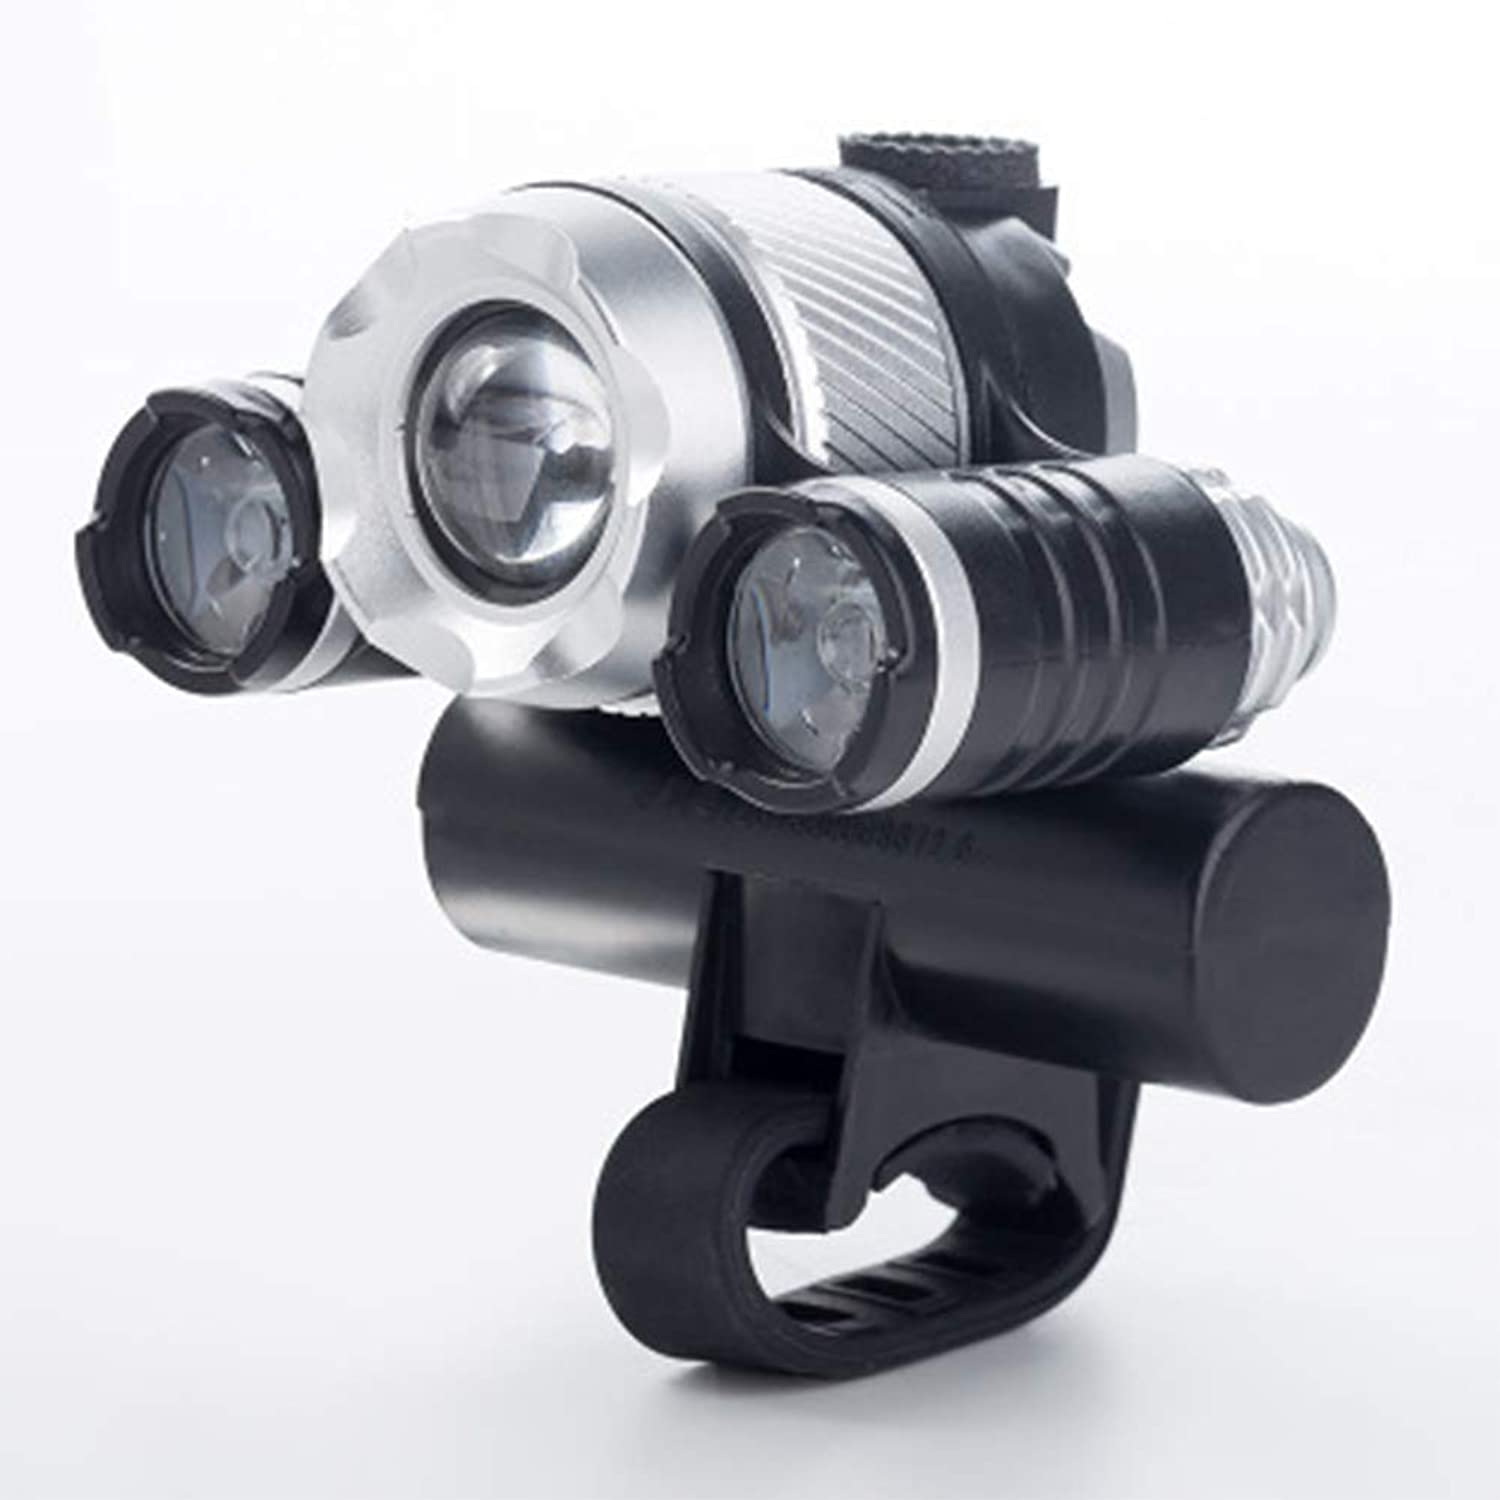 Bike Headlights USB Rechargeable Shockproof Zoom Head Light lightSuper Bright Front LED 3 Mode Option Bicycle IPX5